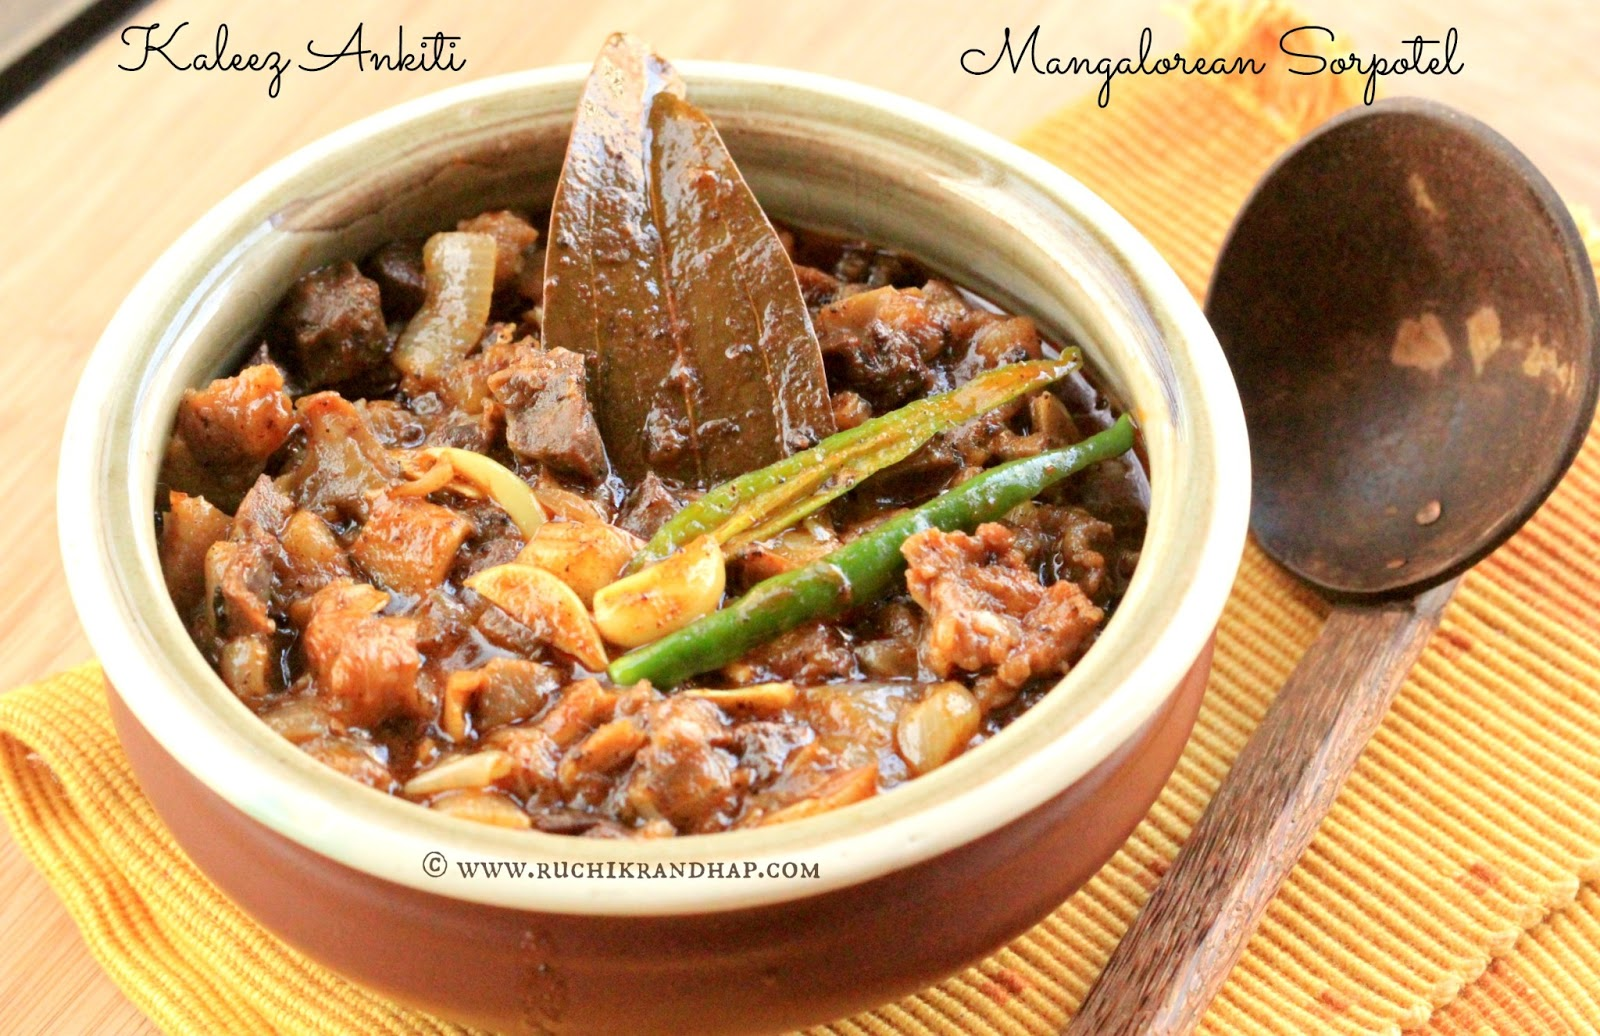 Mangalorean Beef And Bacon Gravy Recipes — Dishmaps